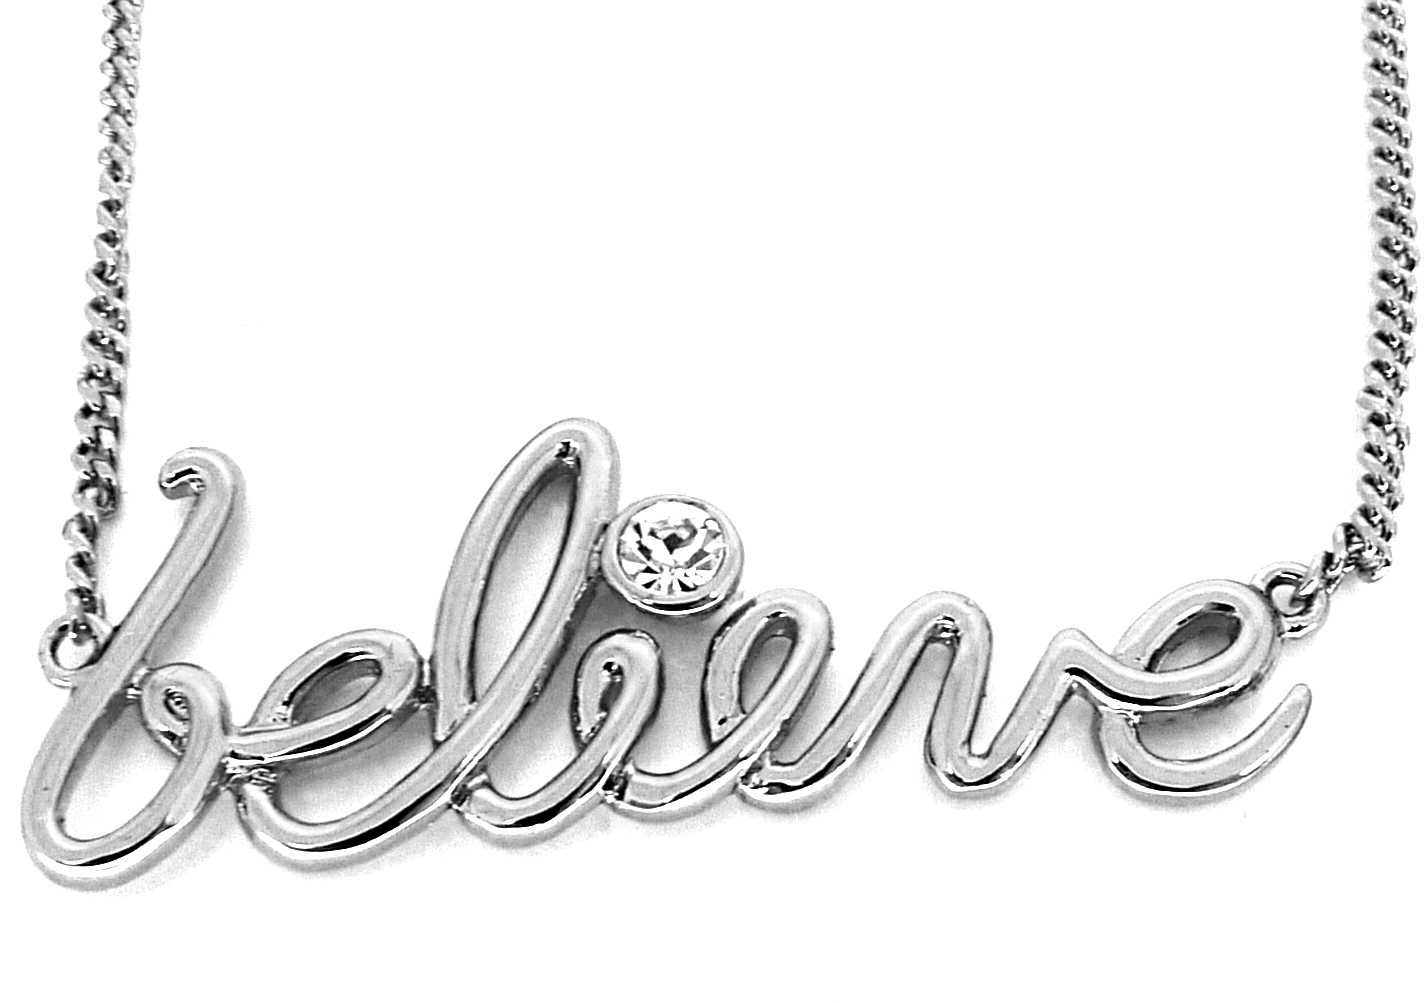 Disney Couture Silver Curly Believe Word Necklace